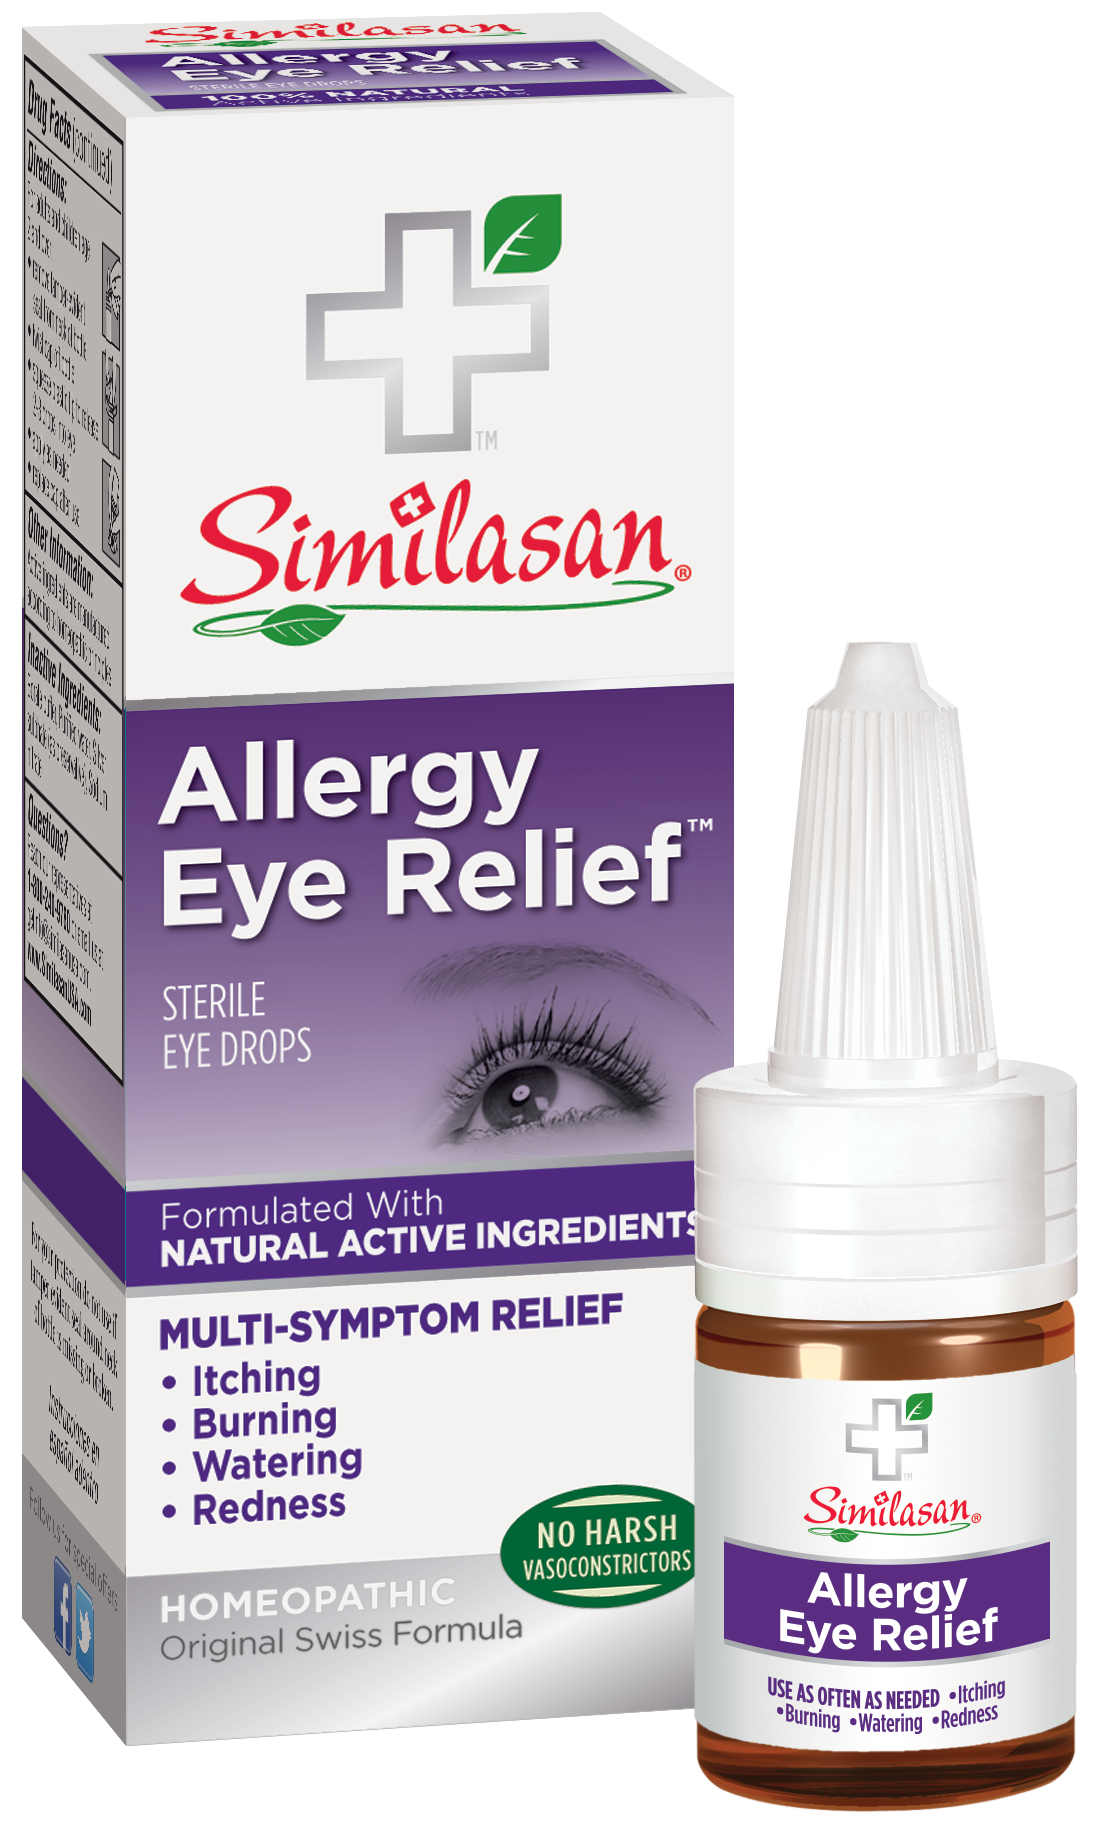 Allergy Eye Relief Eye Drops Made With Herbal Extracts Trusted For Over 200 Years Like Eyebright And Sabadill Eye Allergy Relief Allergy Eyes Eye Care Health